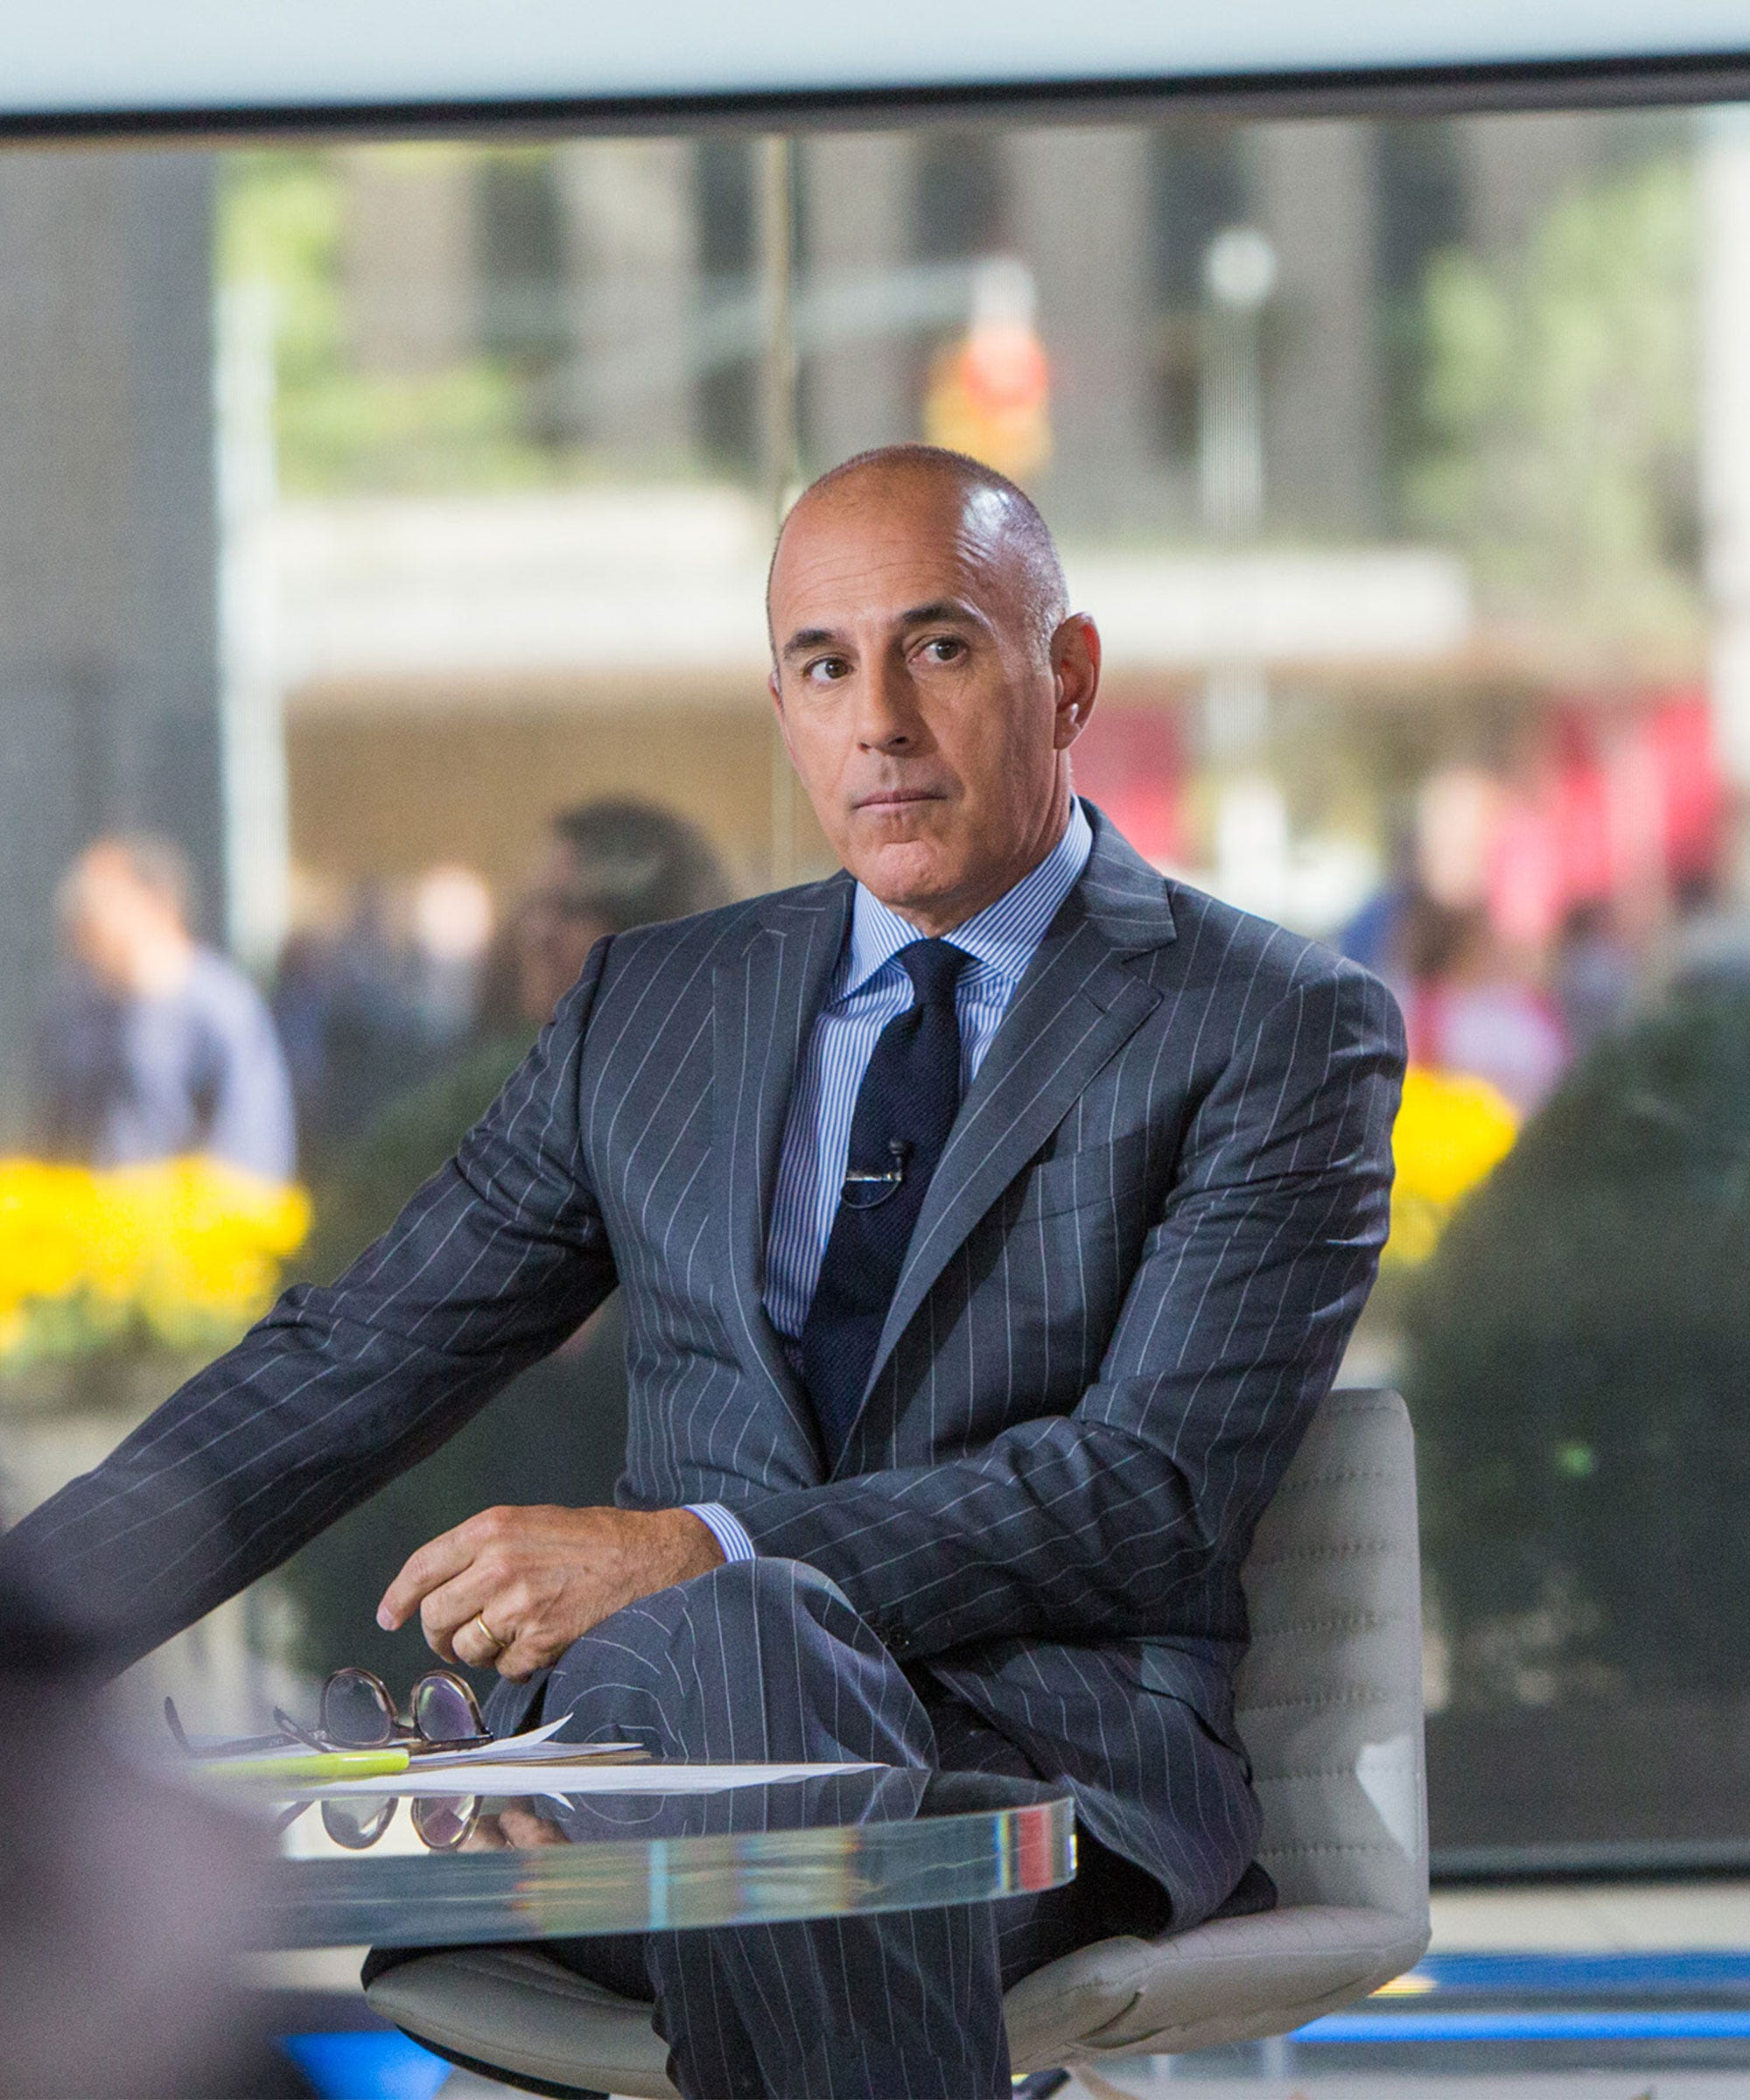 The Today Show Celebrates 25 Years By Erasing Matt Lauer From Its History